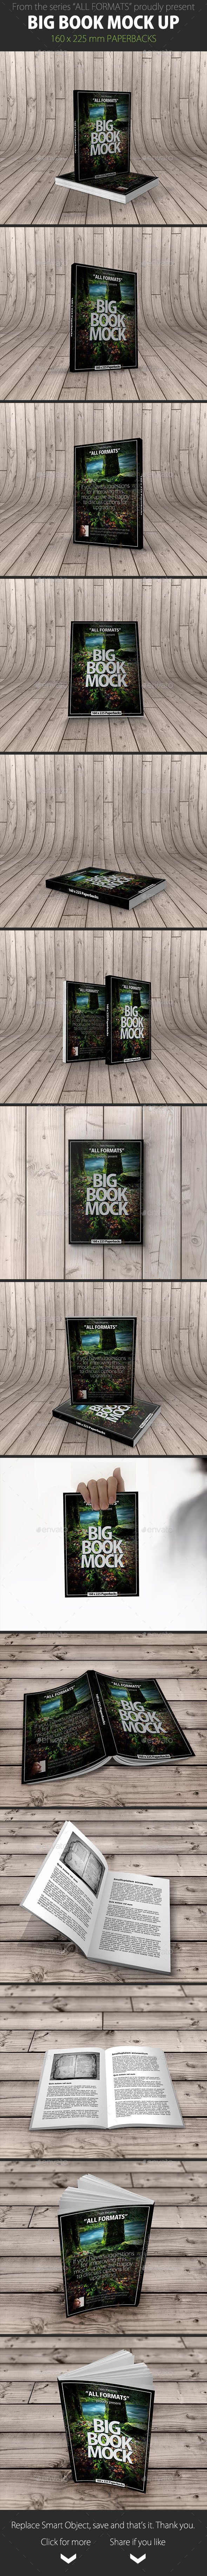 Book Mockup Dimension 160 x 225 mm - Paperbacks - Books Print